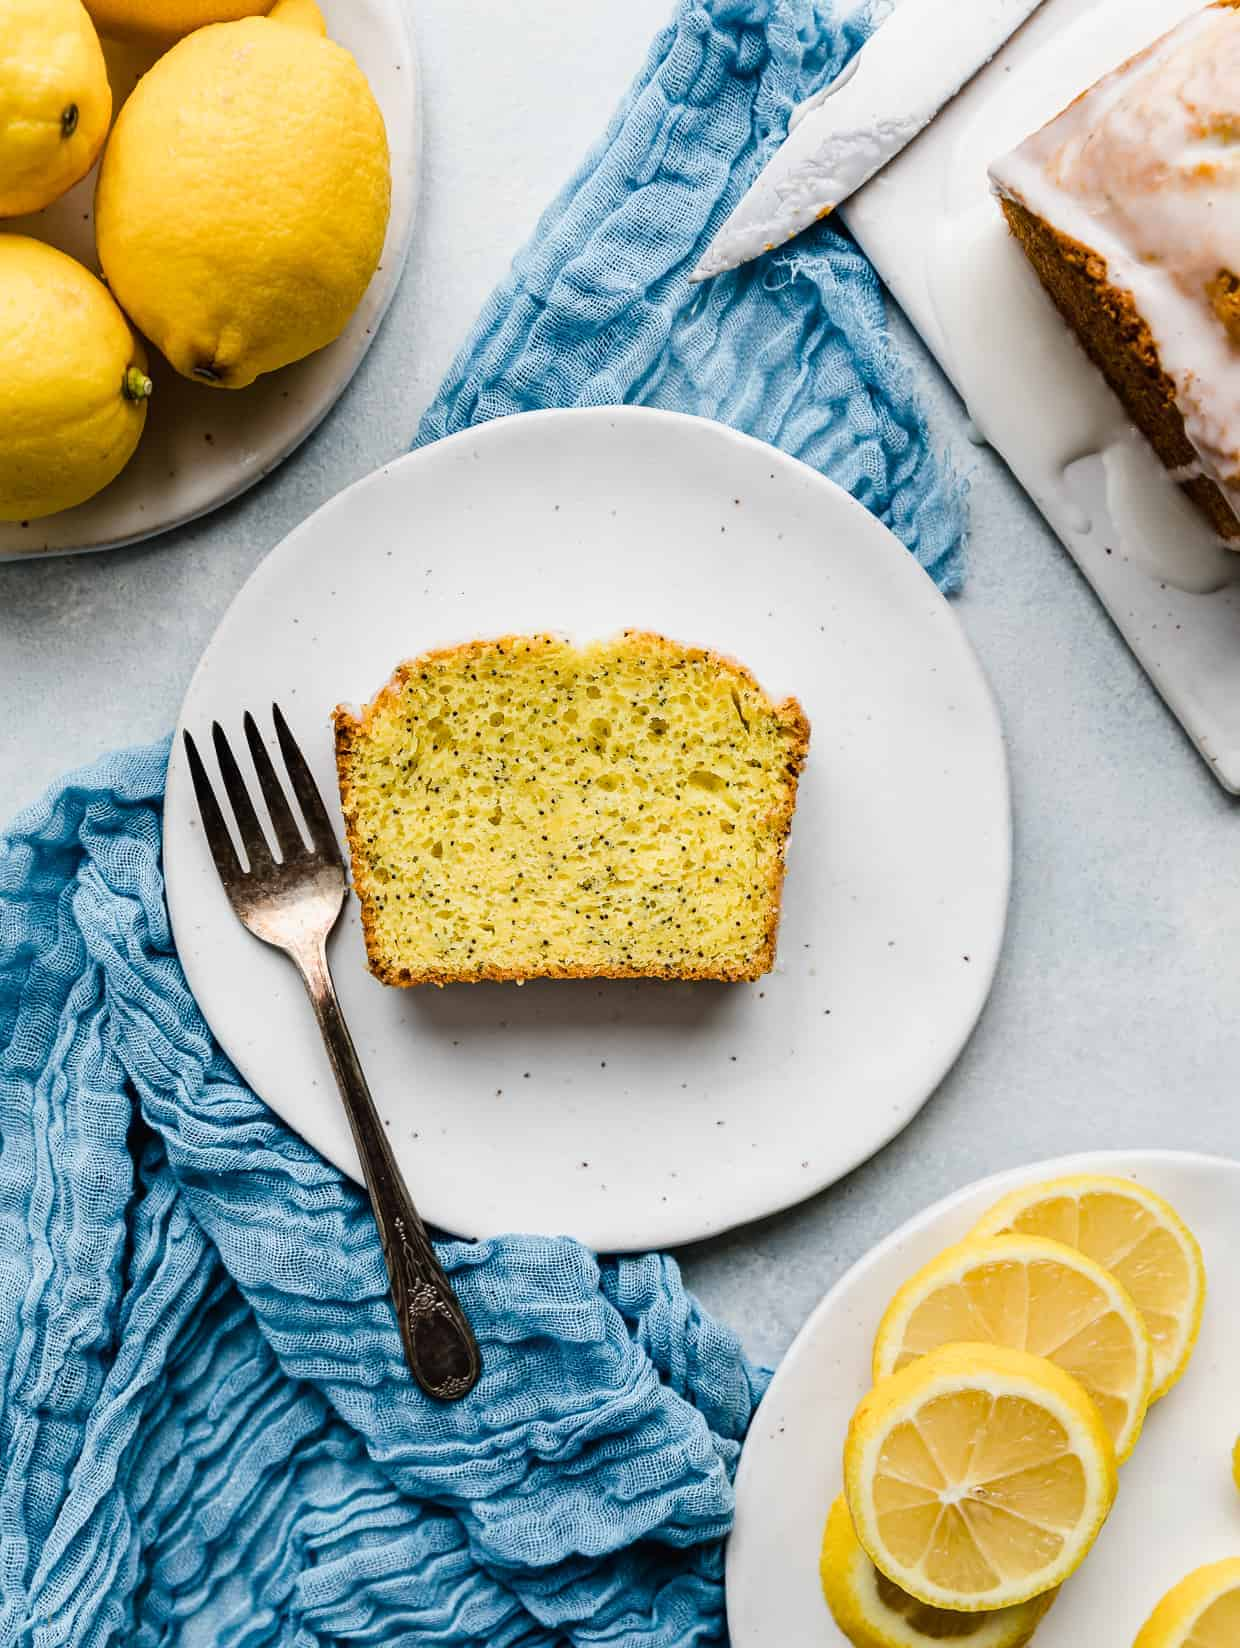 A slice of lemon poppy seed bread on a white plate with a fork next to the slice.